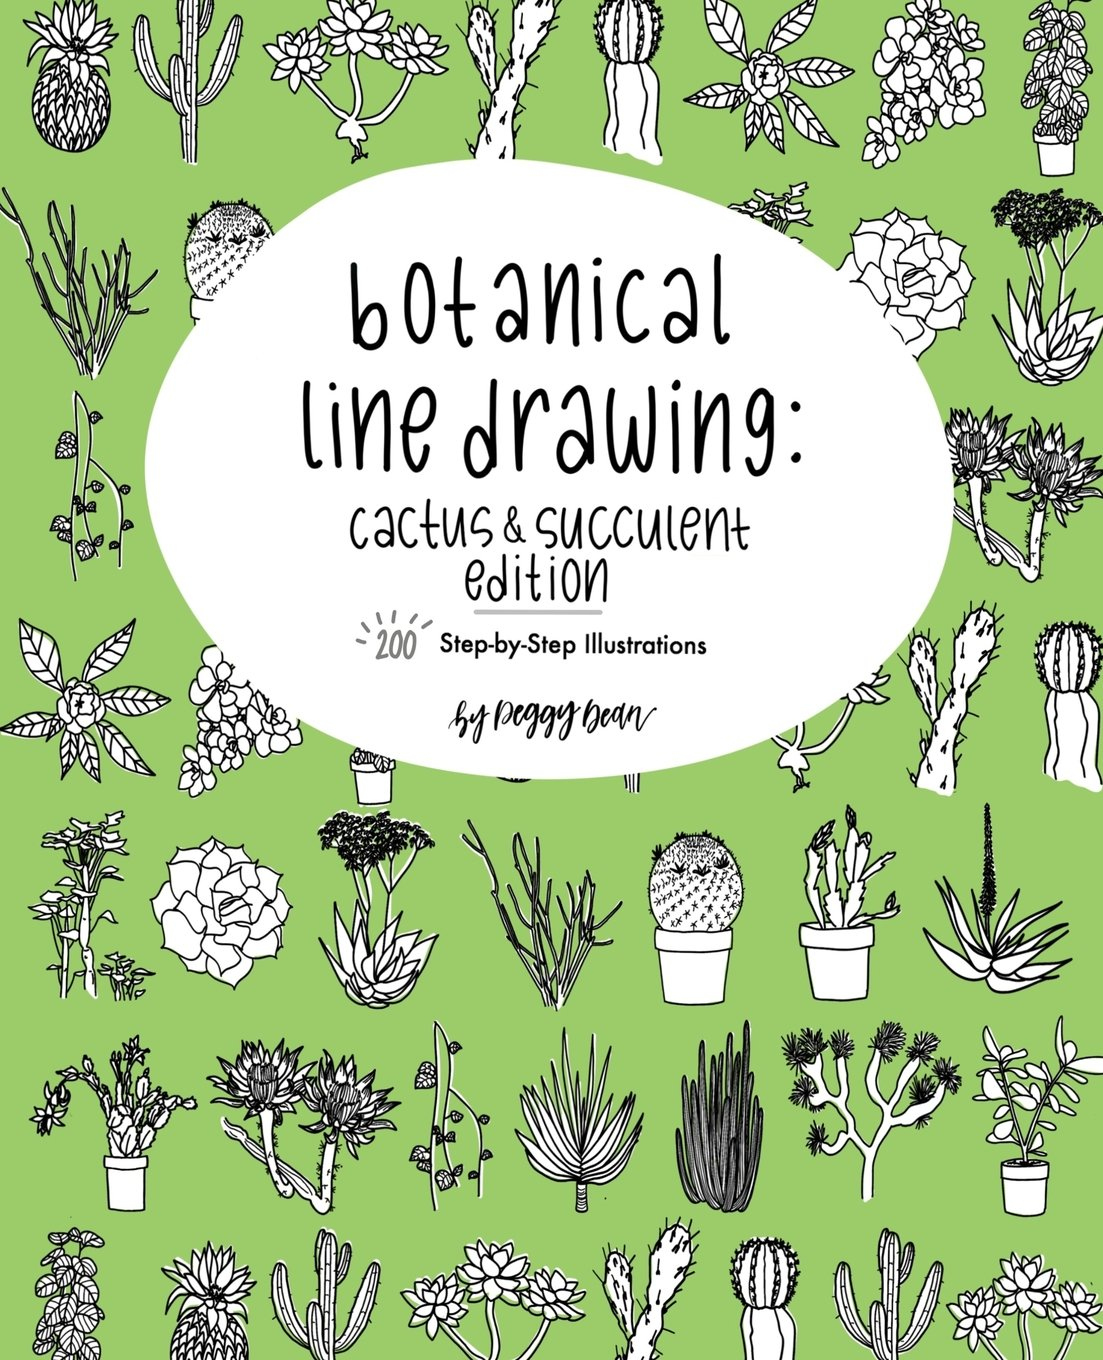 Botanical Line Drawing: Cacti & Succulent Edition